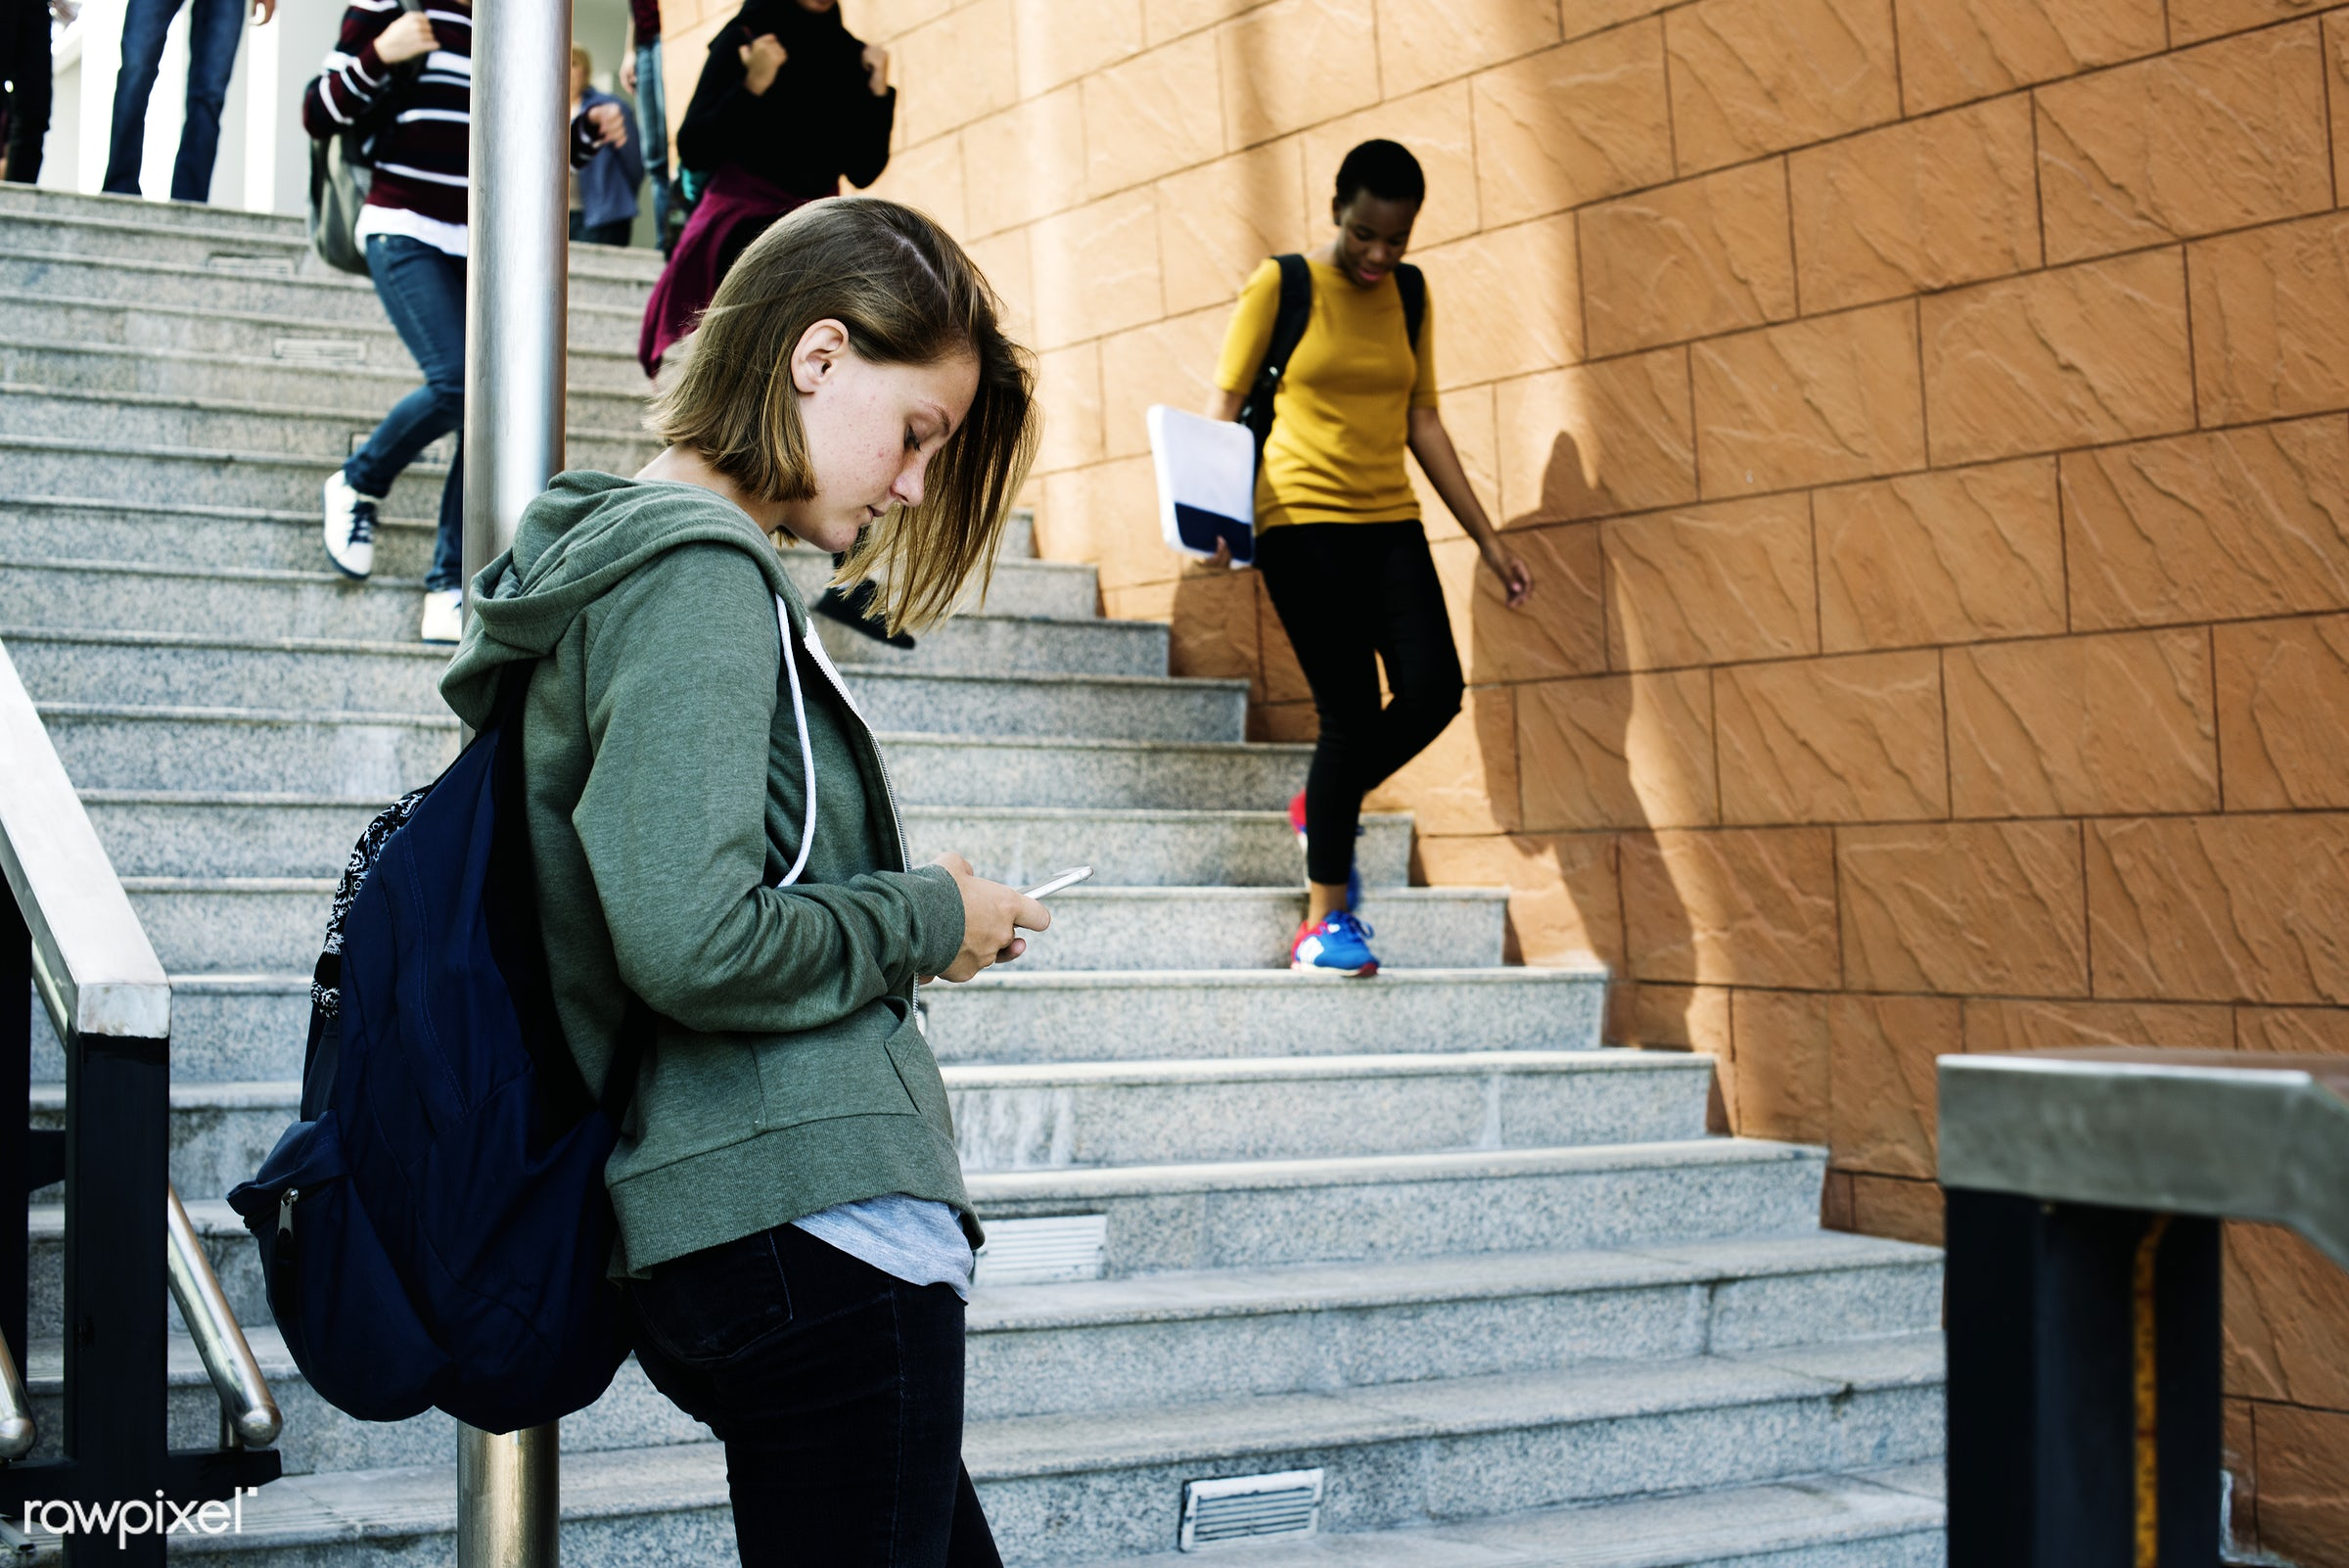 using, walking, people, caucasian, stairway, lifestyle, casual, boys, path, smart phone, girls, students, building,...